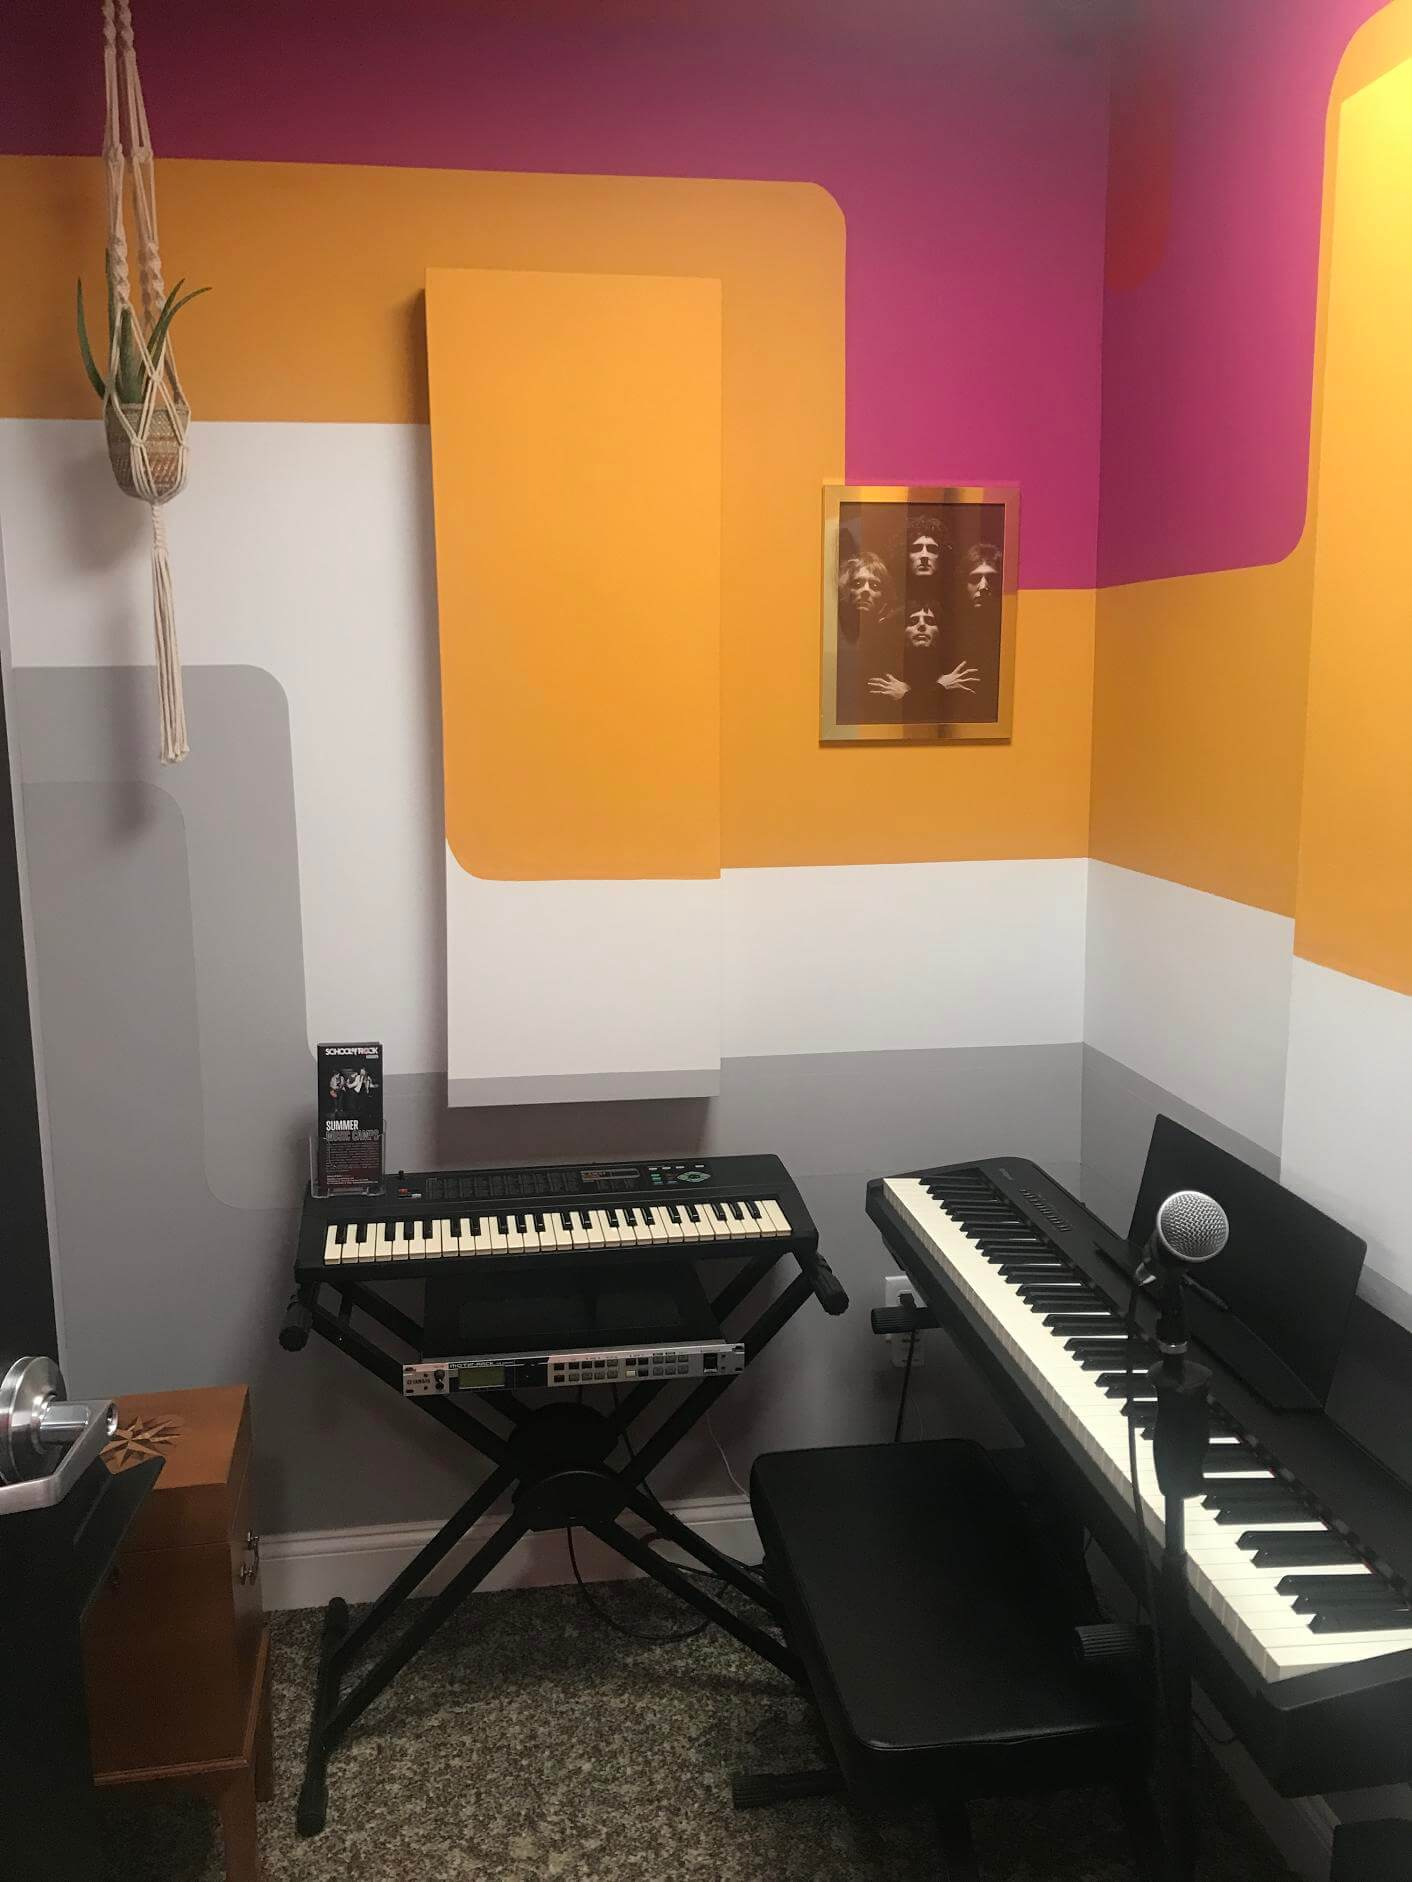 Our 1970s music room has a great vibe.